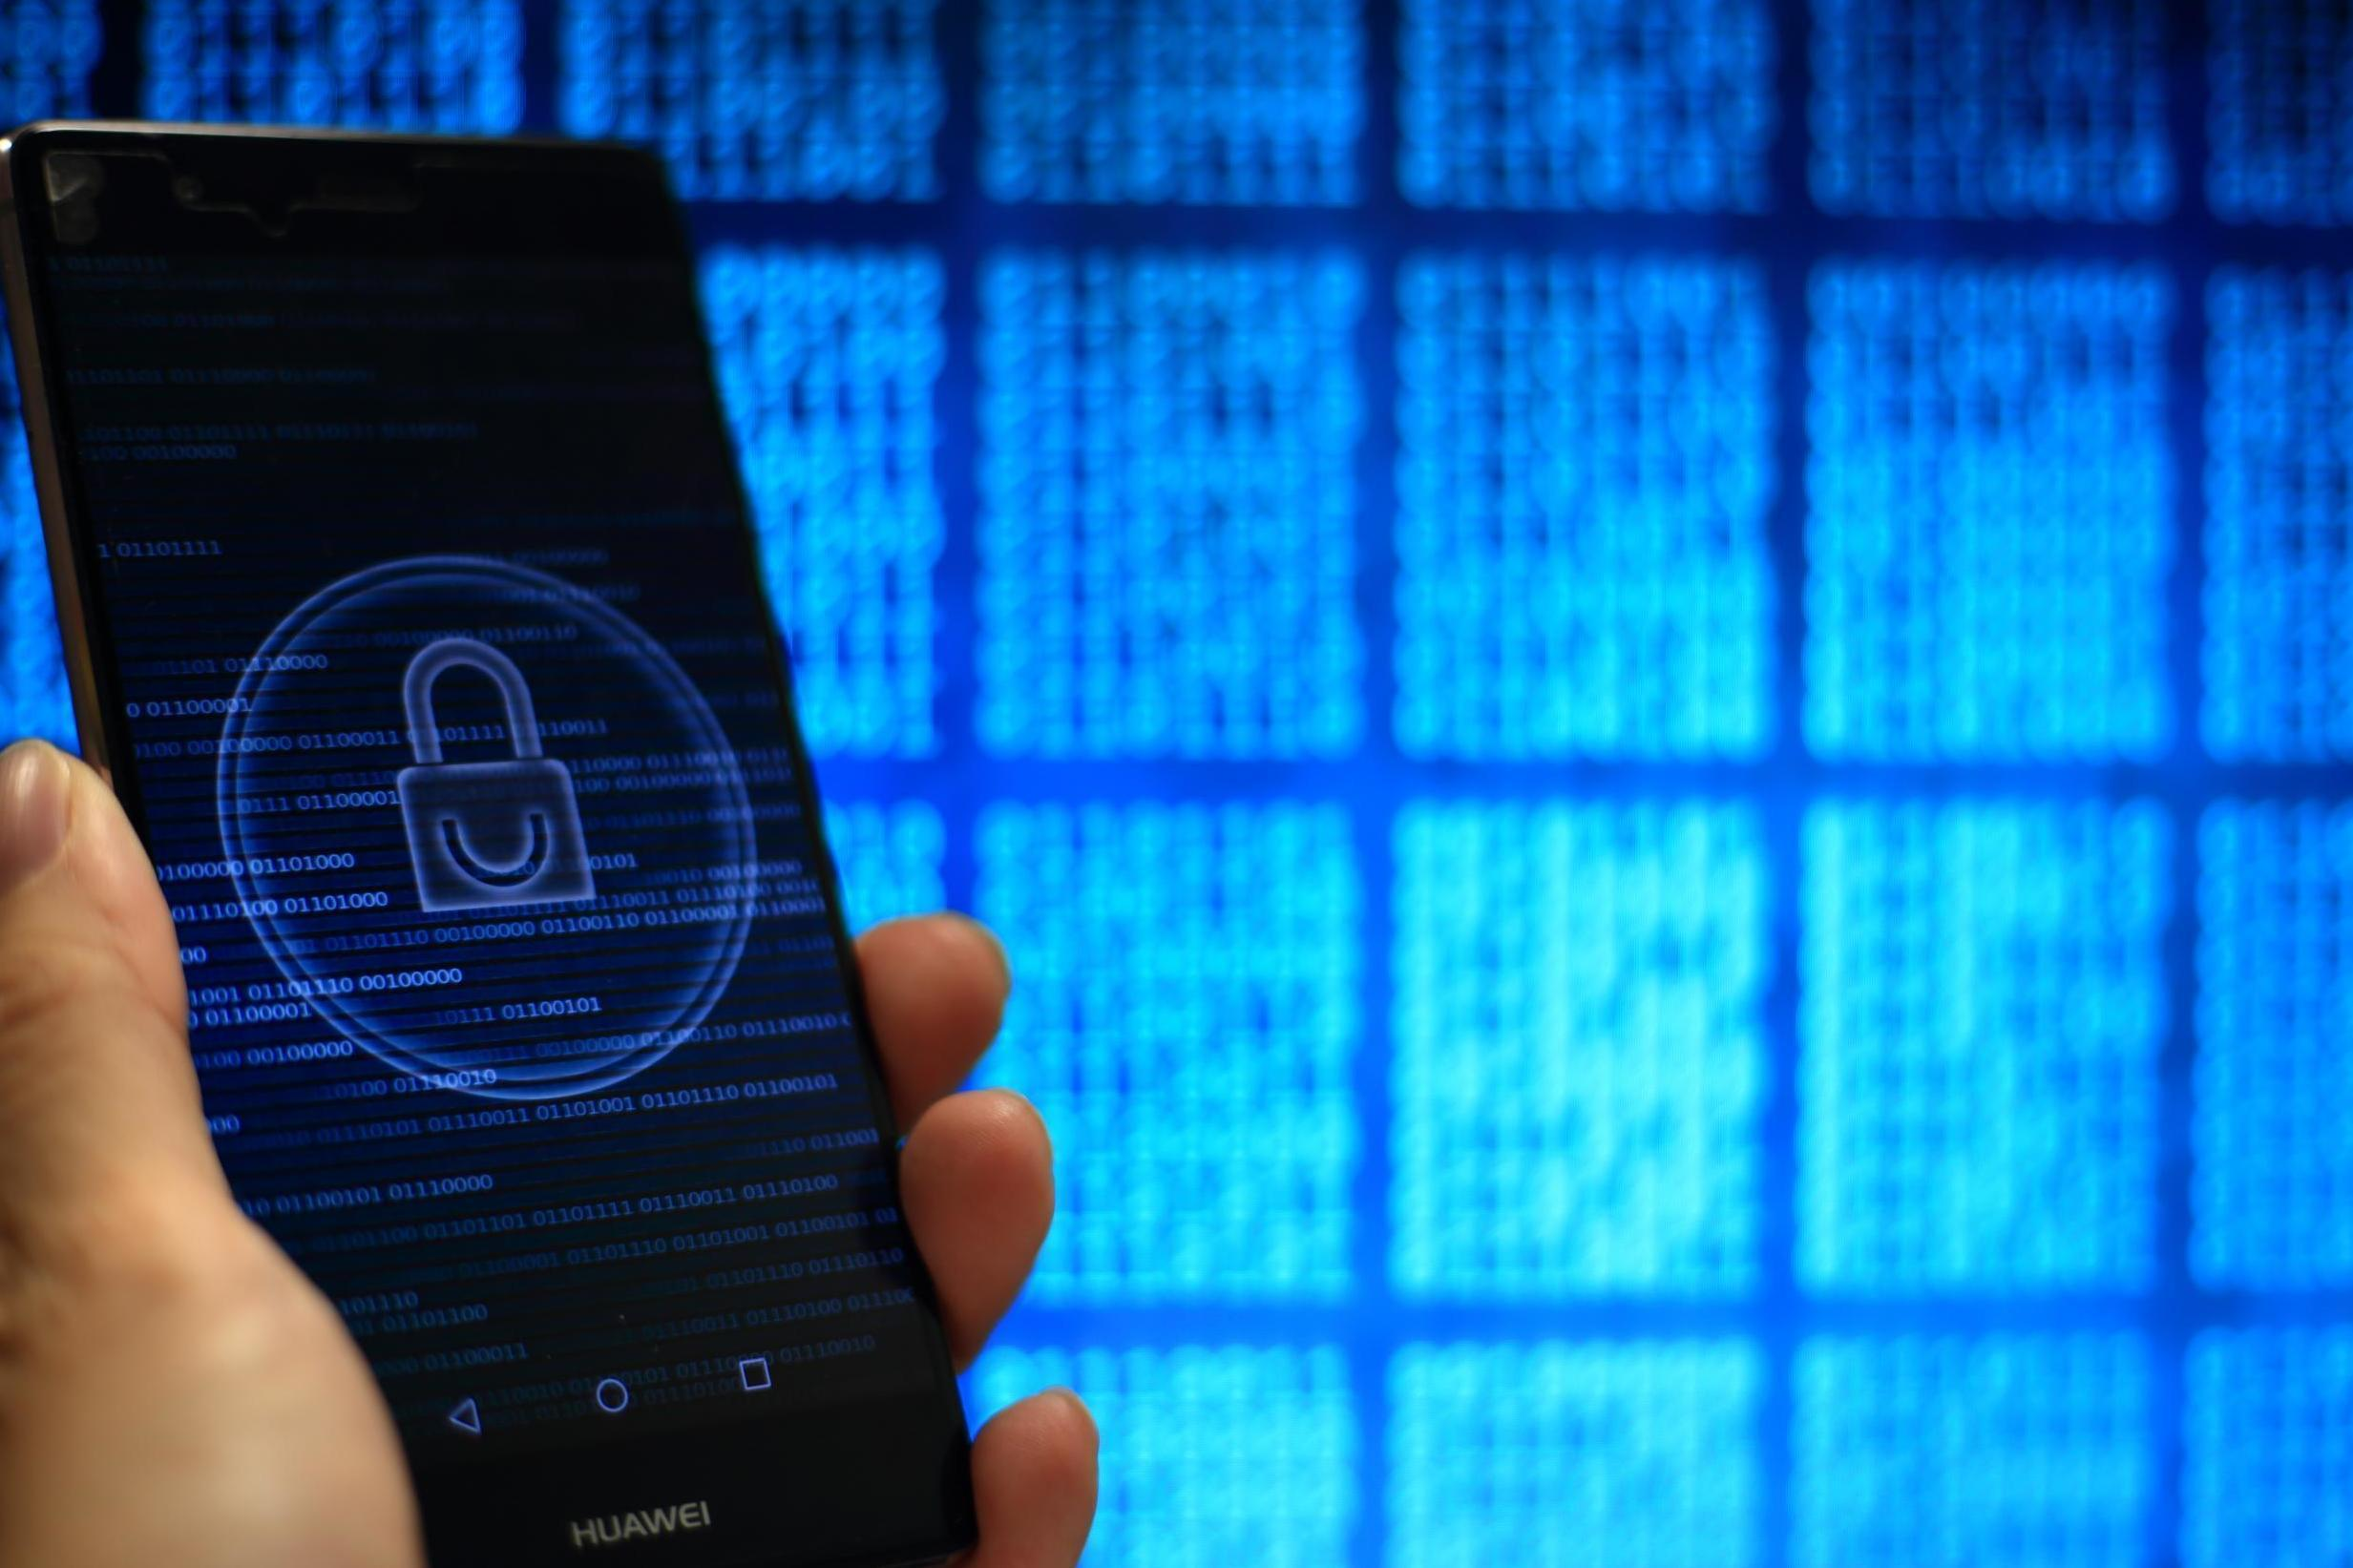 Google flaw allowed hackers access to Android phones through camera